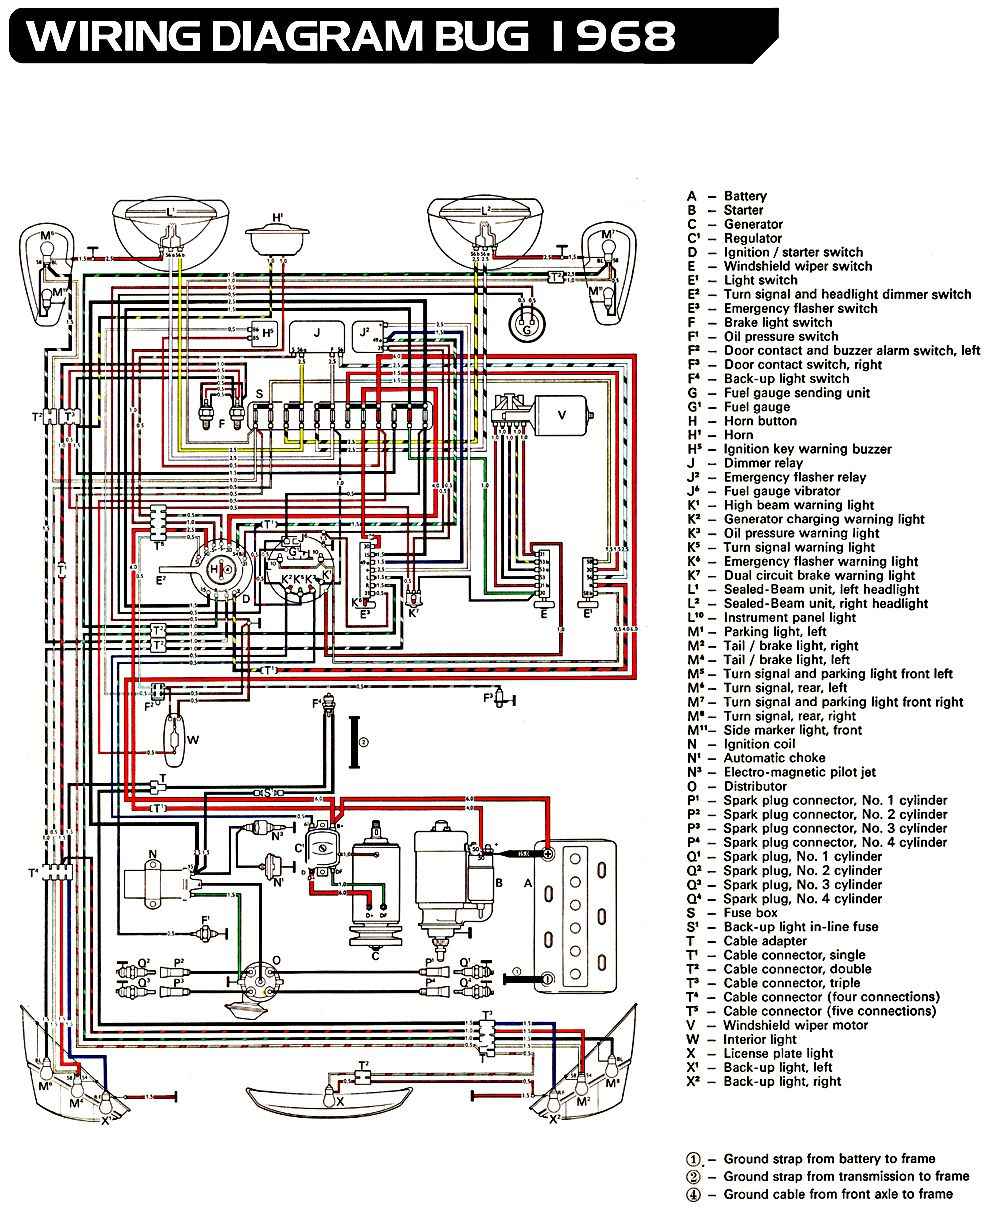 3a1908112d3826270ed5e3be362292bf vw bug ignition wiring diagram 73 vw wiring diagram free 73 vw beetle wiring diagram at bakdesigns.co